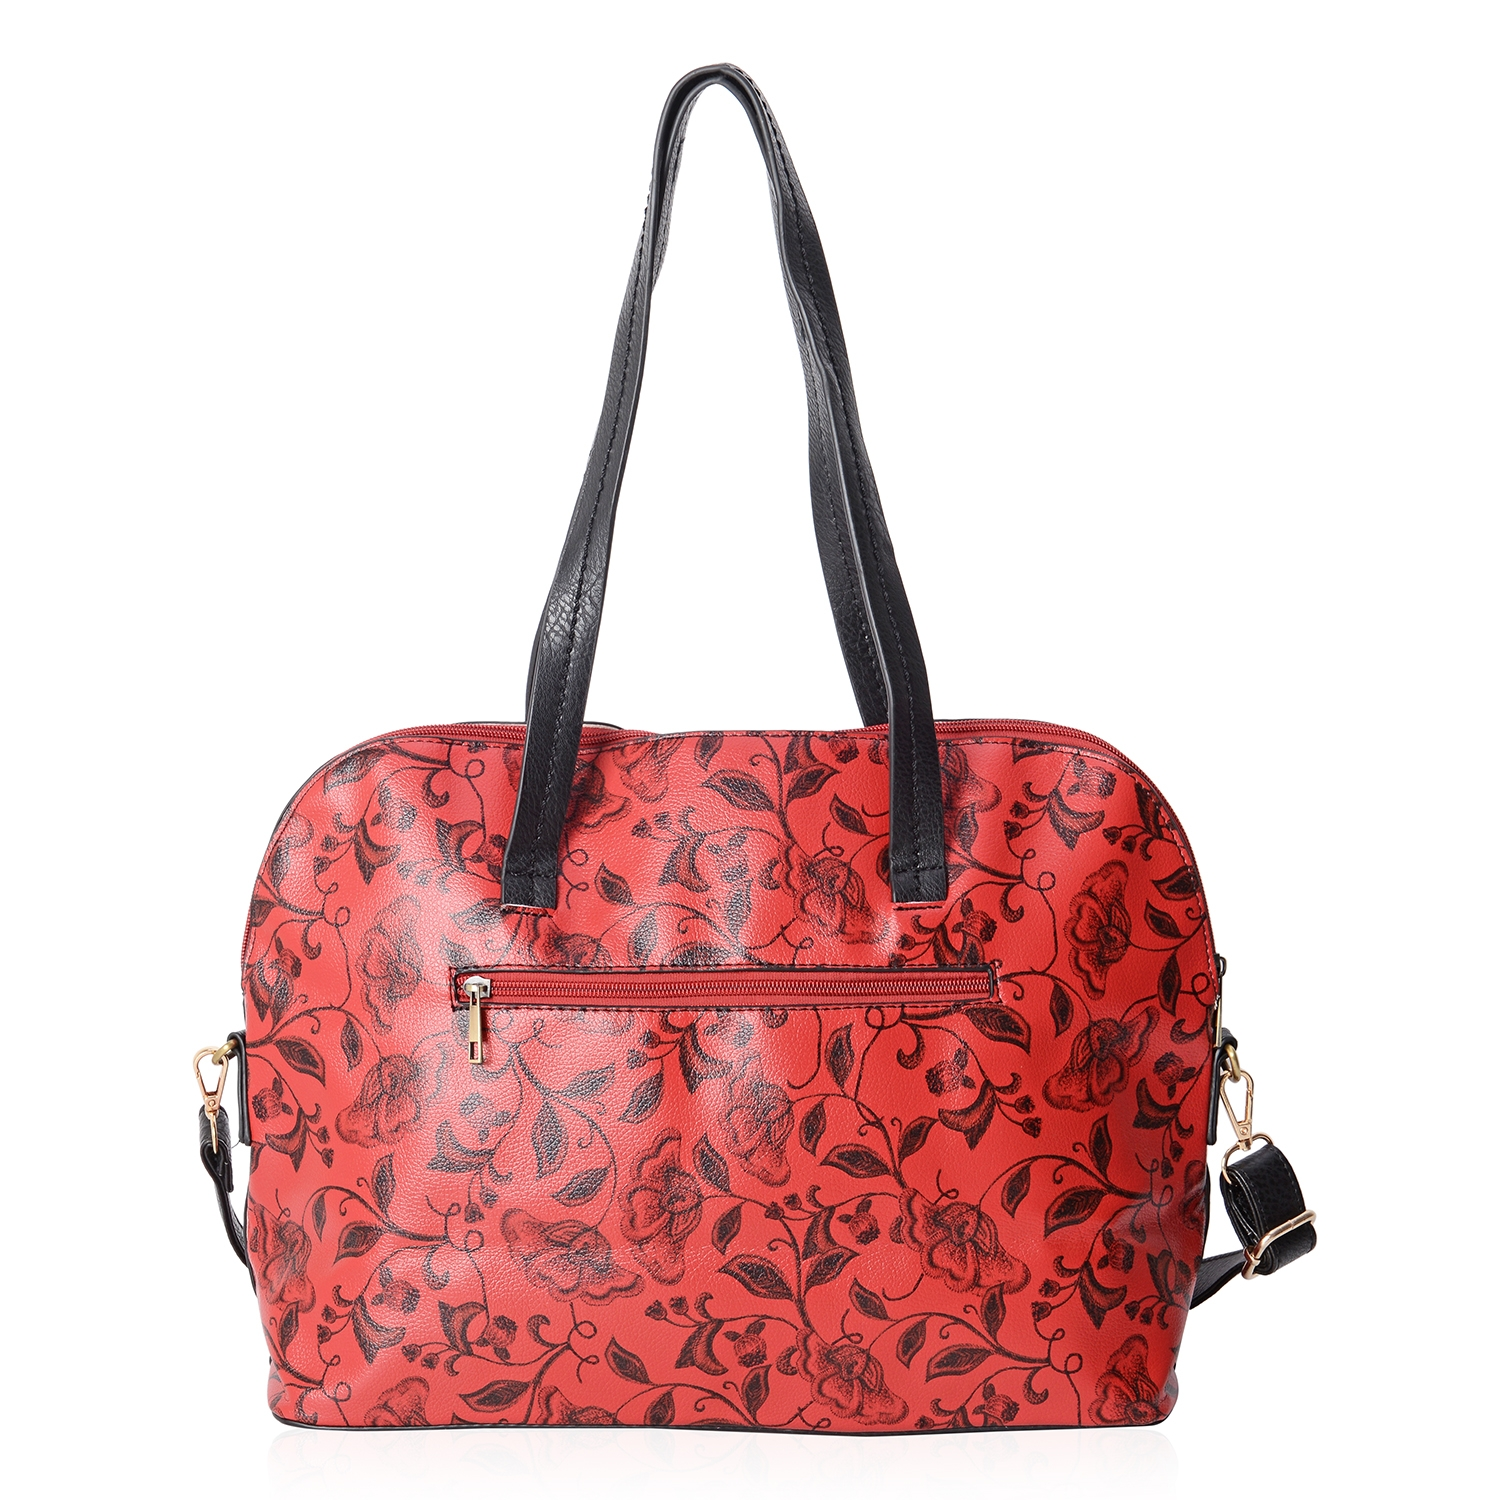 1b910ba9be92 Blue with Flower Pattern Faux Leather Tote Bag with Removable ...